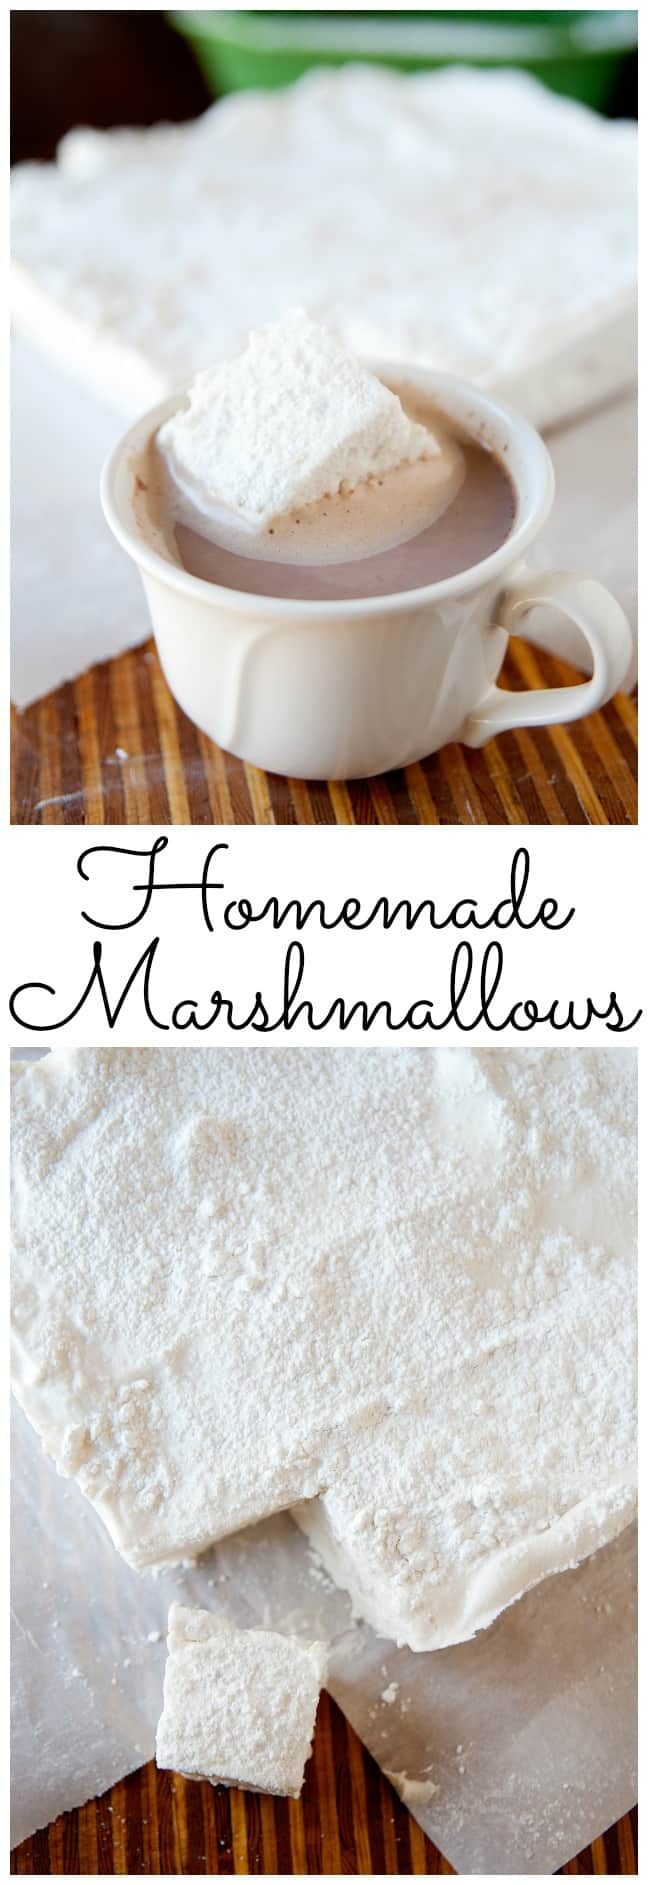 Can I use homemade marshmallows?